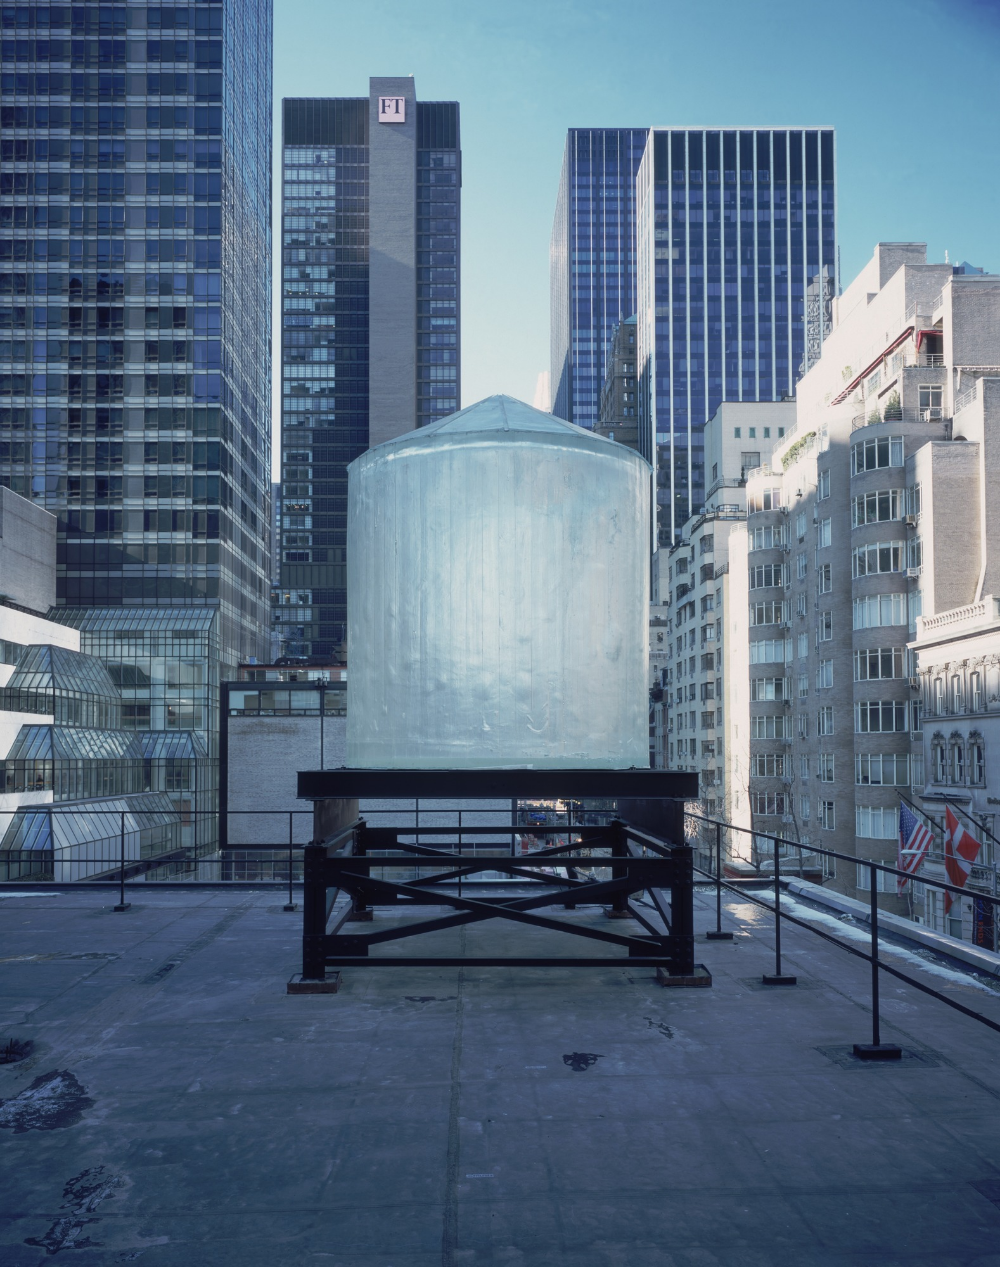 Rachel Whiteread Water Tower 1998 Moma Rachel Whiteread Water Tower Public Art